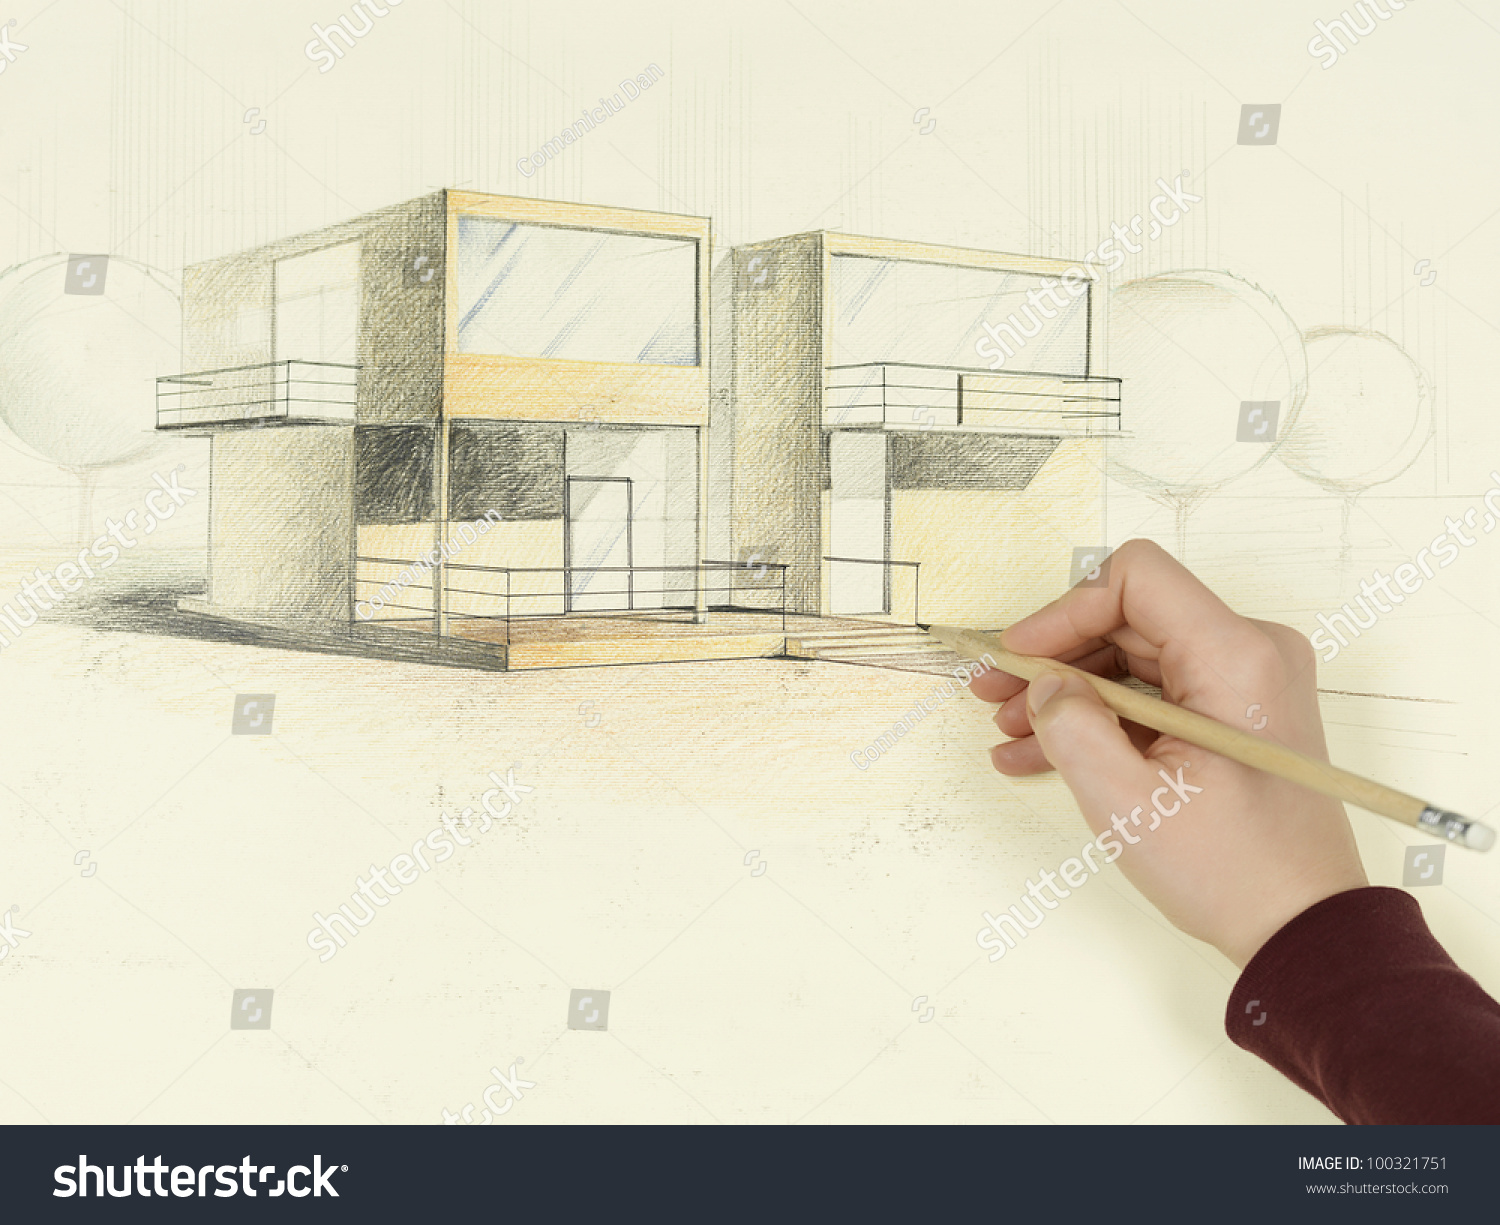 Download building pencil sketch architecture wallpaper for iphone